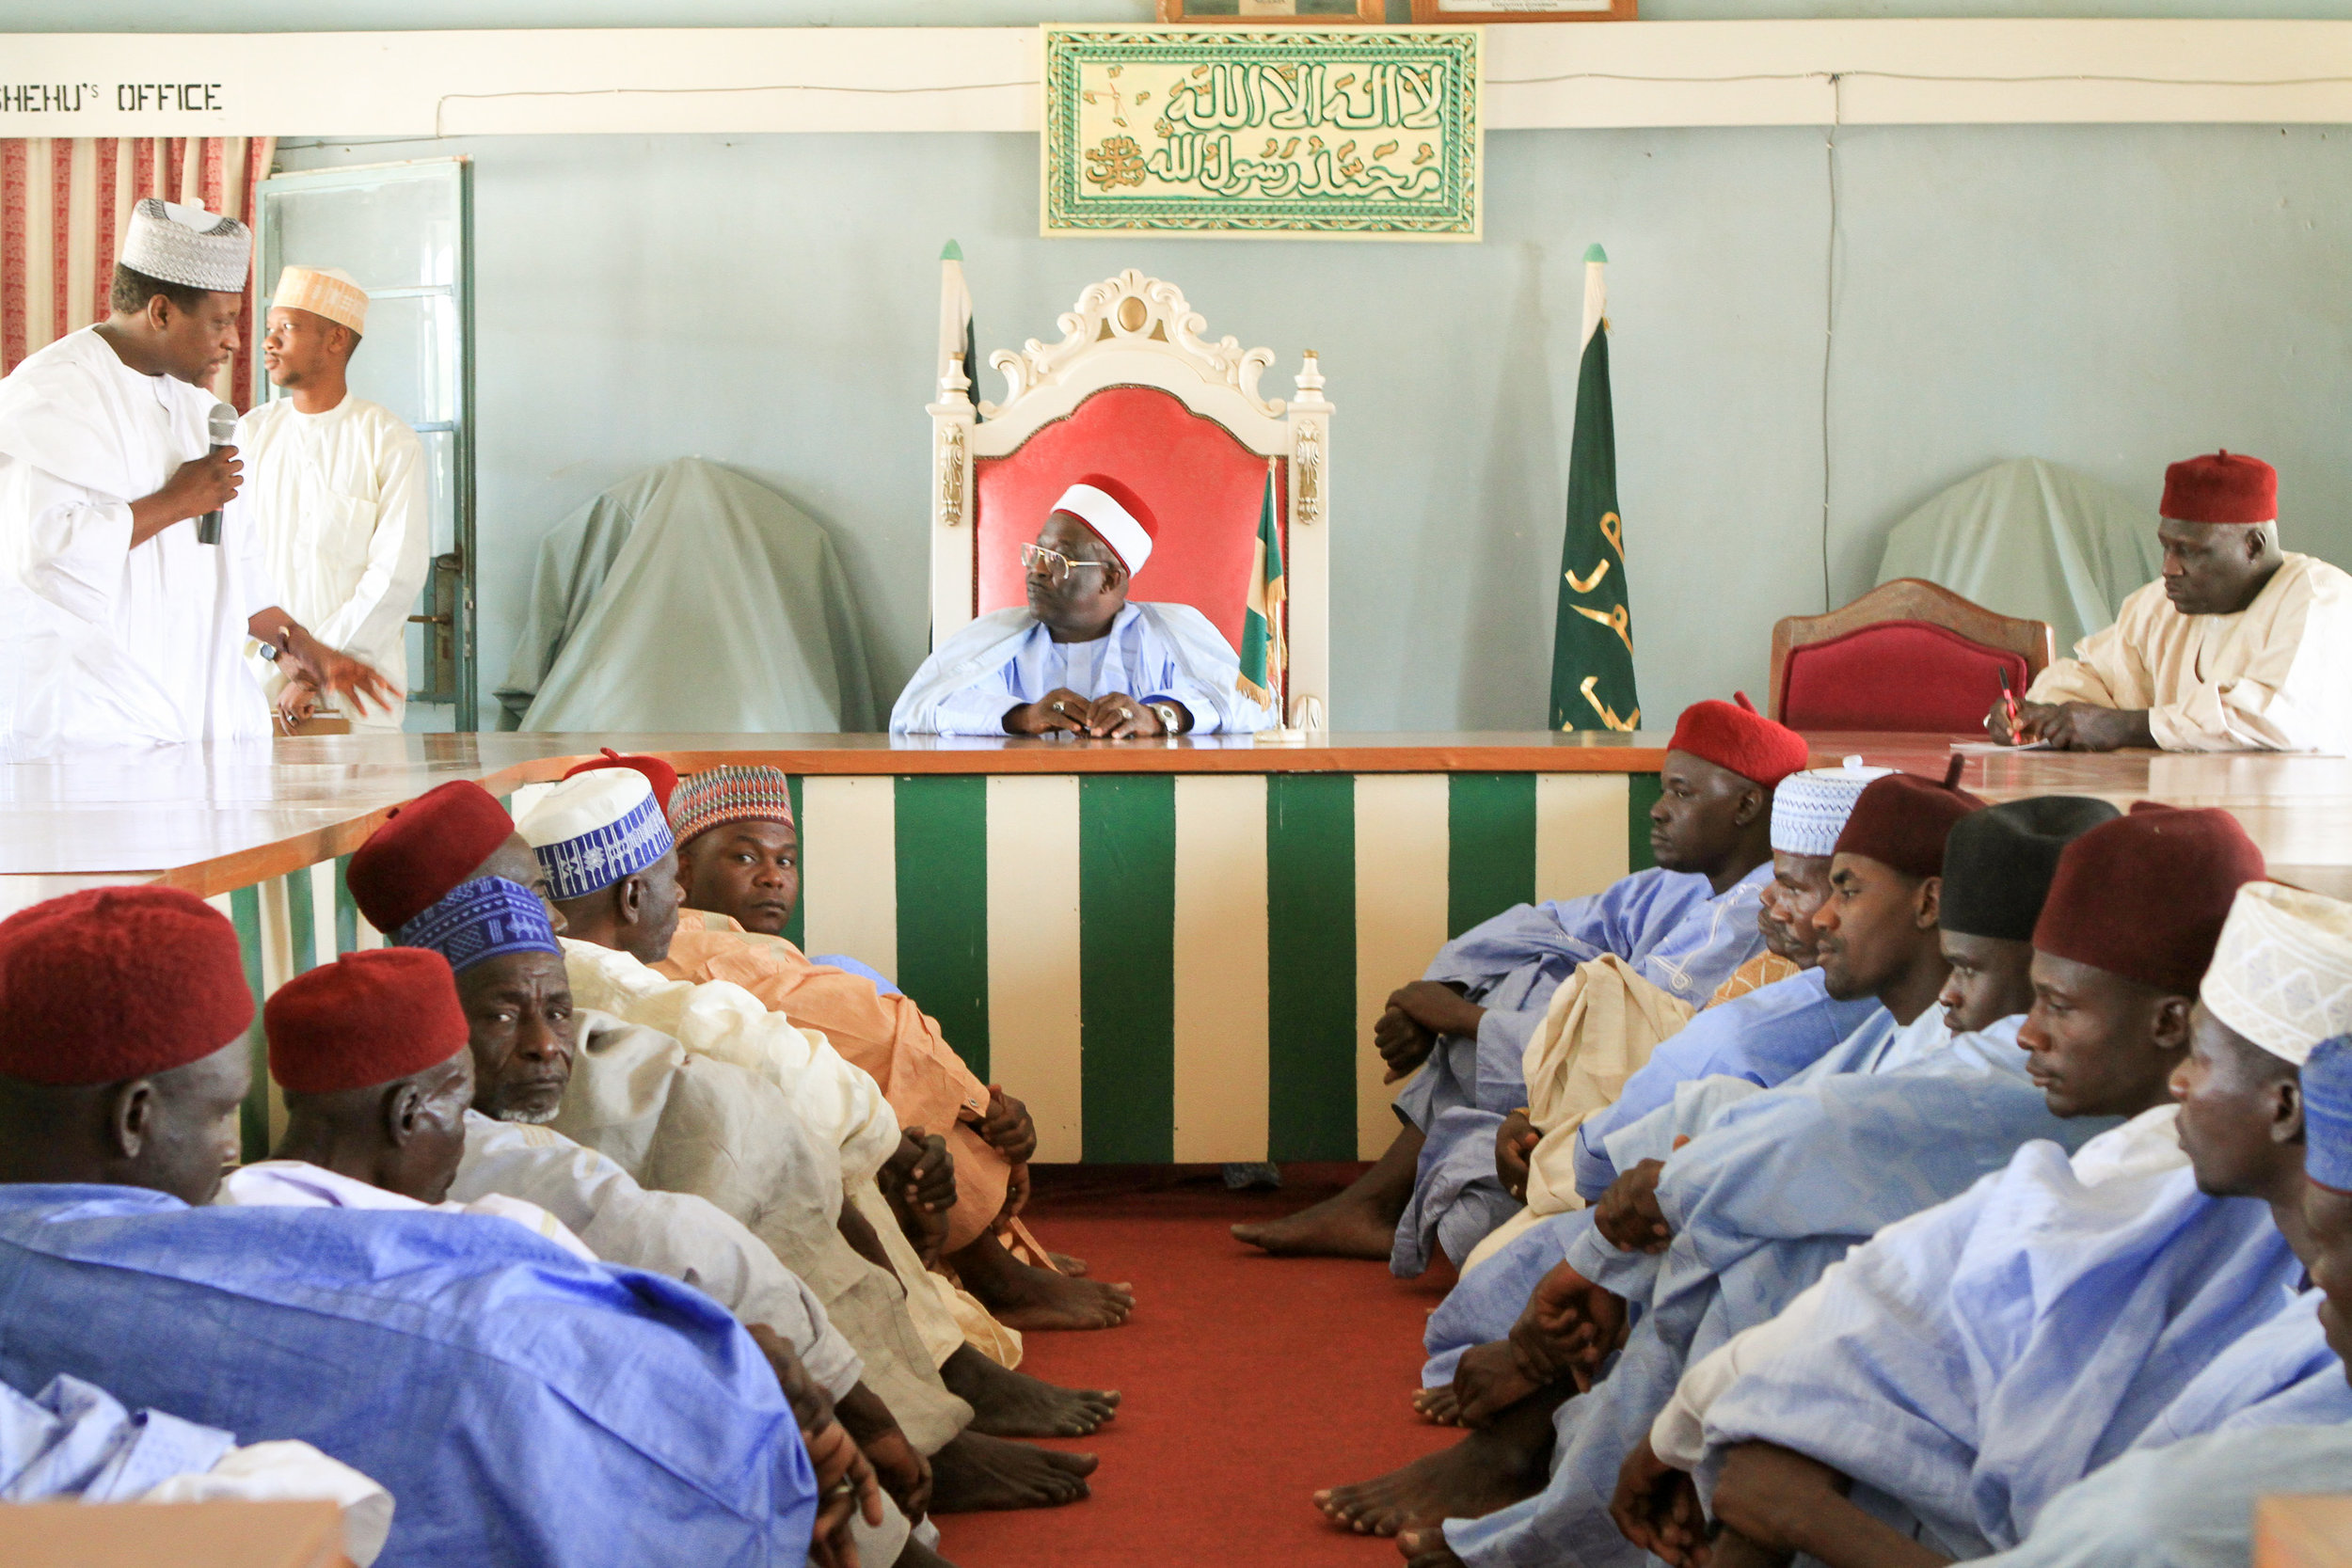 """The next day we travelled to Bama. This is the traditional leader of Bama in his """"palace."""" He greeted us warmly and promised to do more to fight polio."""